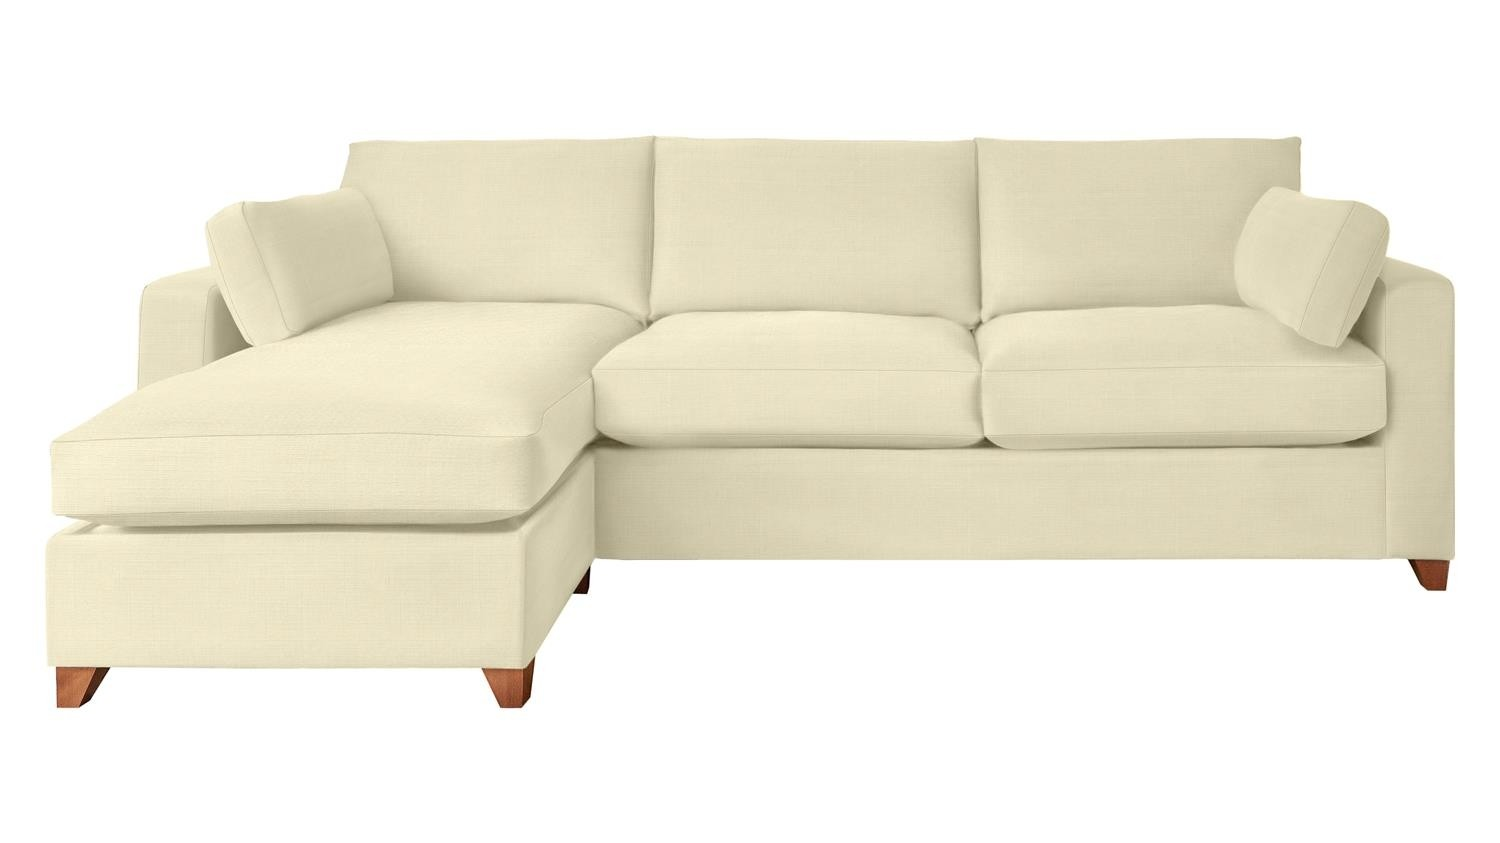 The Ashwell 6 Seater Left Chaise Storage Sofa